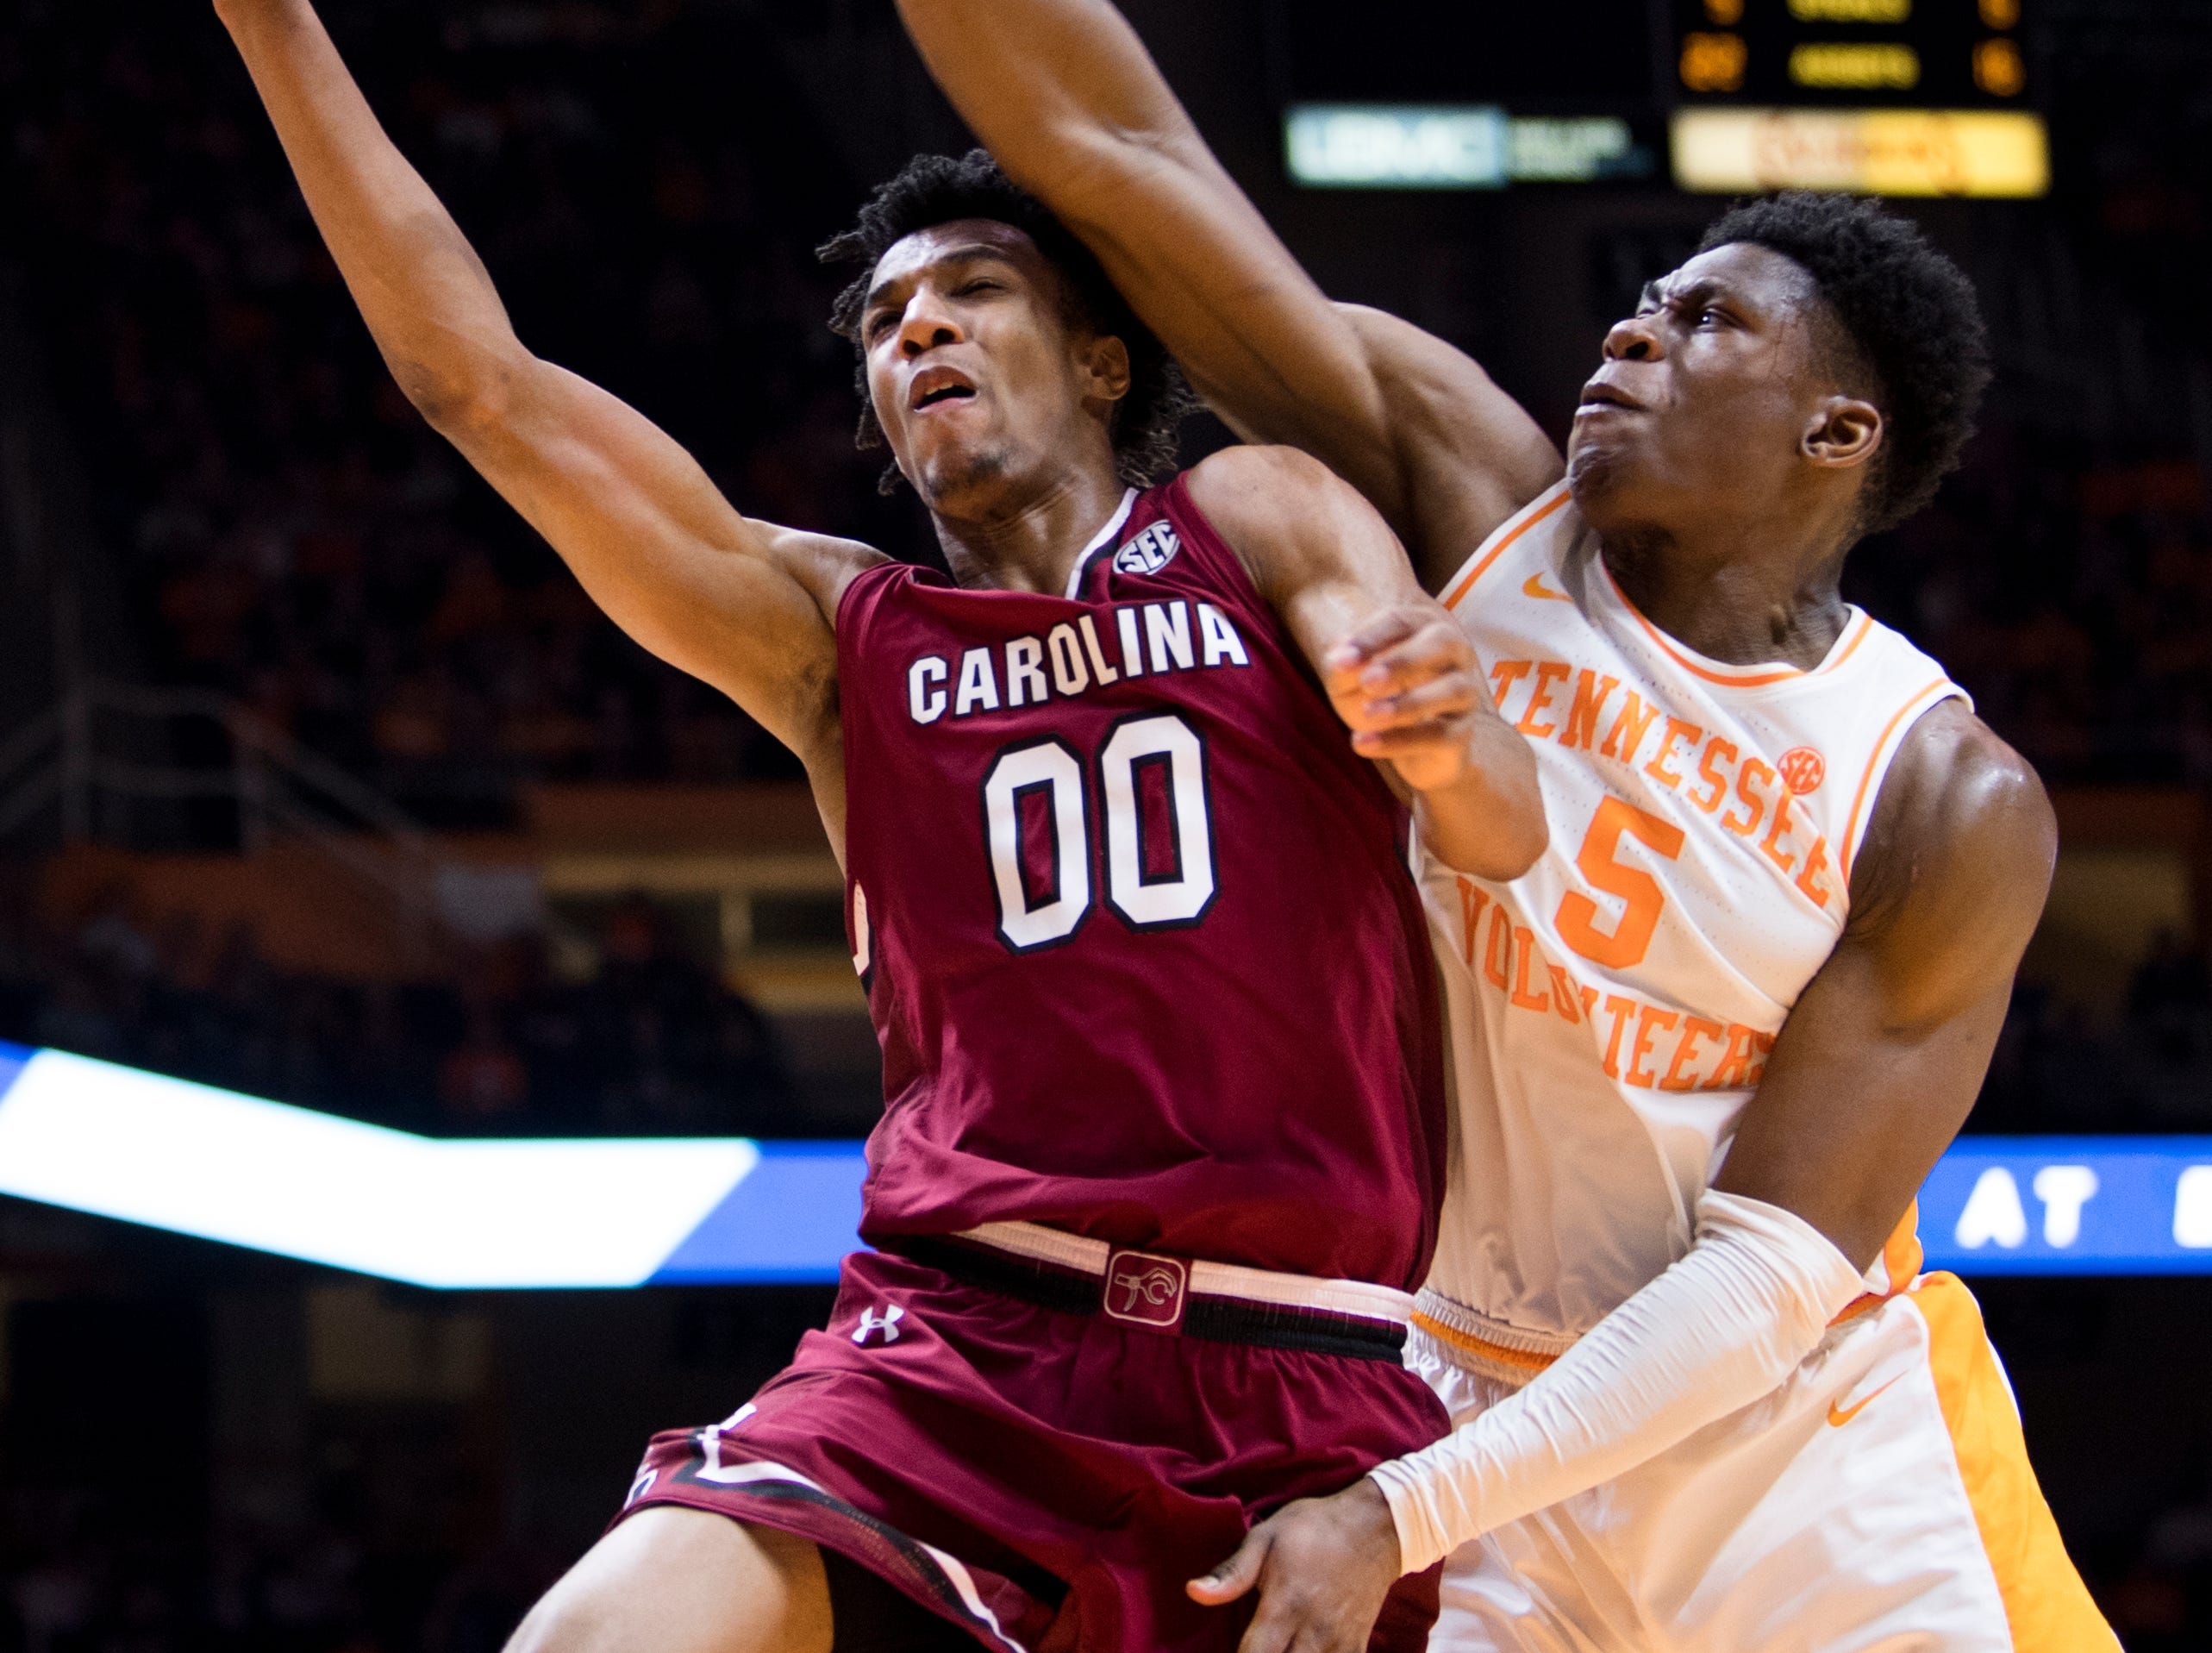 Tennessee guard Admiral Schofield (5) blocks a shot by South Carolina guard A.J. Lawson (0) during Tennessee's home SEC game against South Carolina at Thompson-Boling Arena in Knoxville on Wednesday, February 13, 2019.